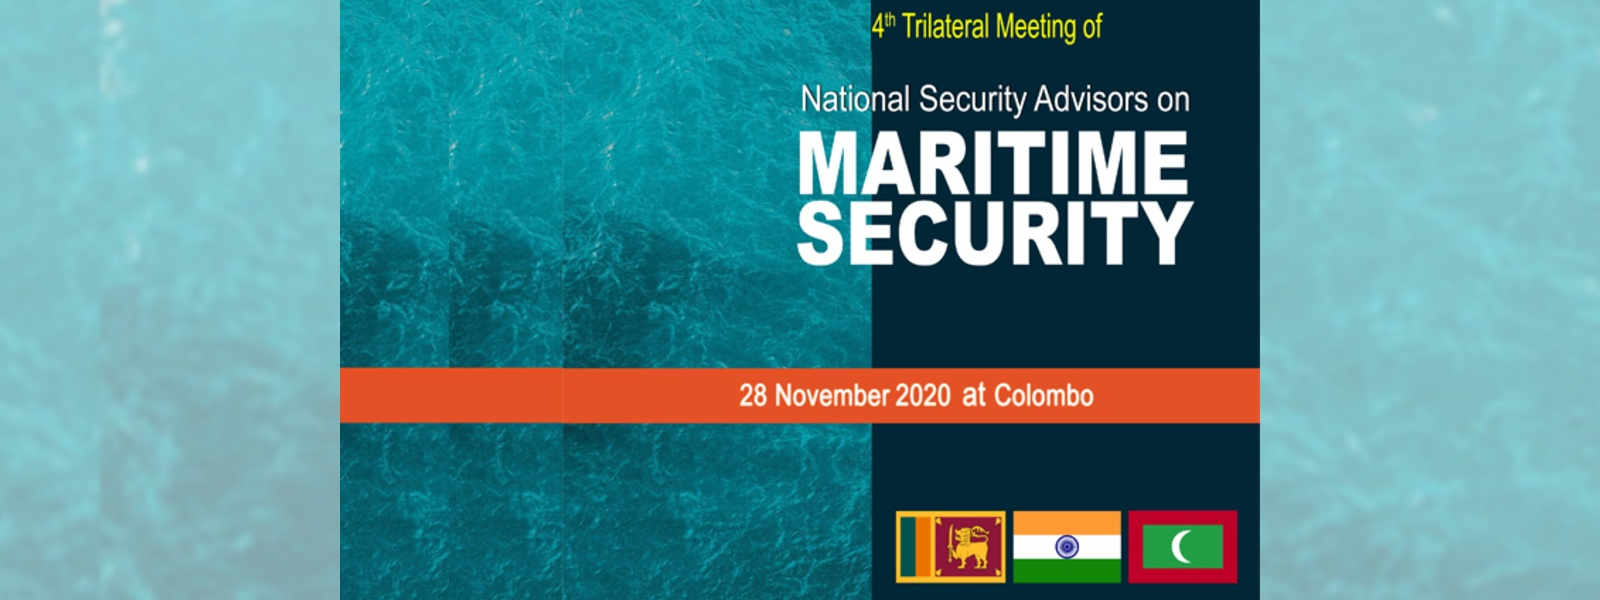 Sri Lanka to host 4th NSA Level Trilateral Meeting on Maritime Security Cooperation